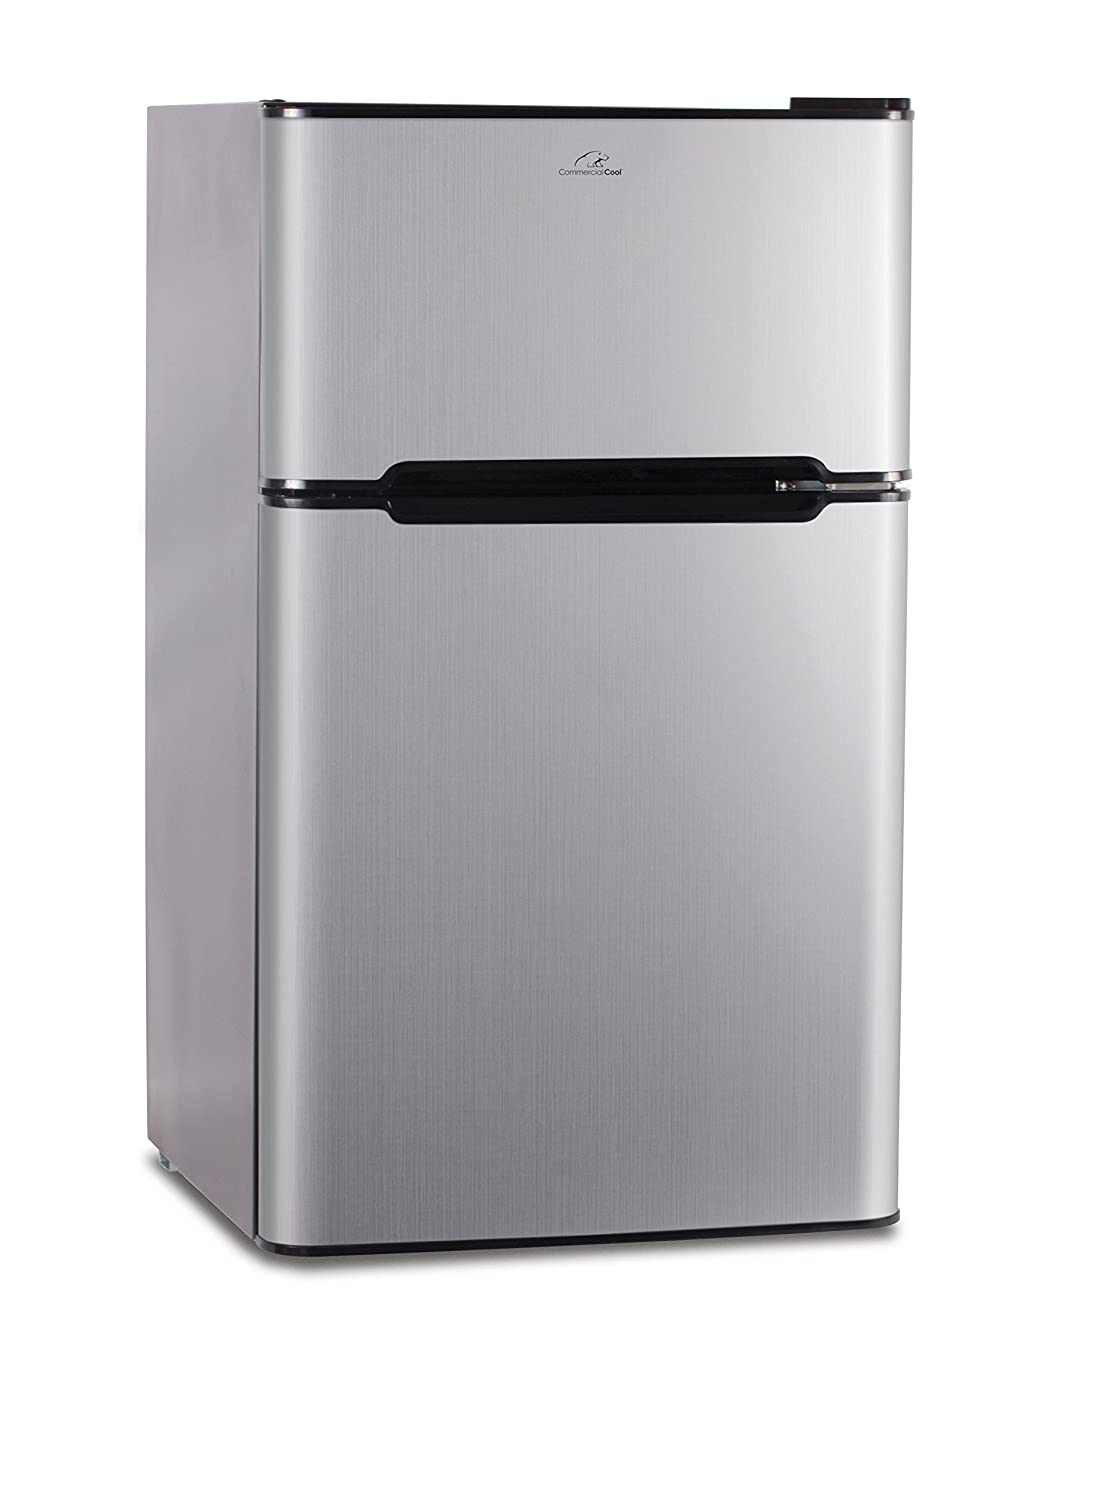 Commercial Cool CCRD32V 3.2 Cu.Ft. Compact Double Door Fridge with True Freezer and R600a Refrigerant, Stainless Steel VCM, R600a